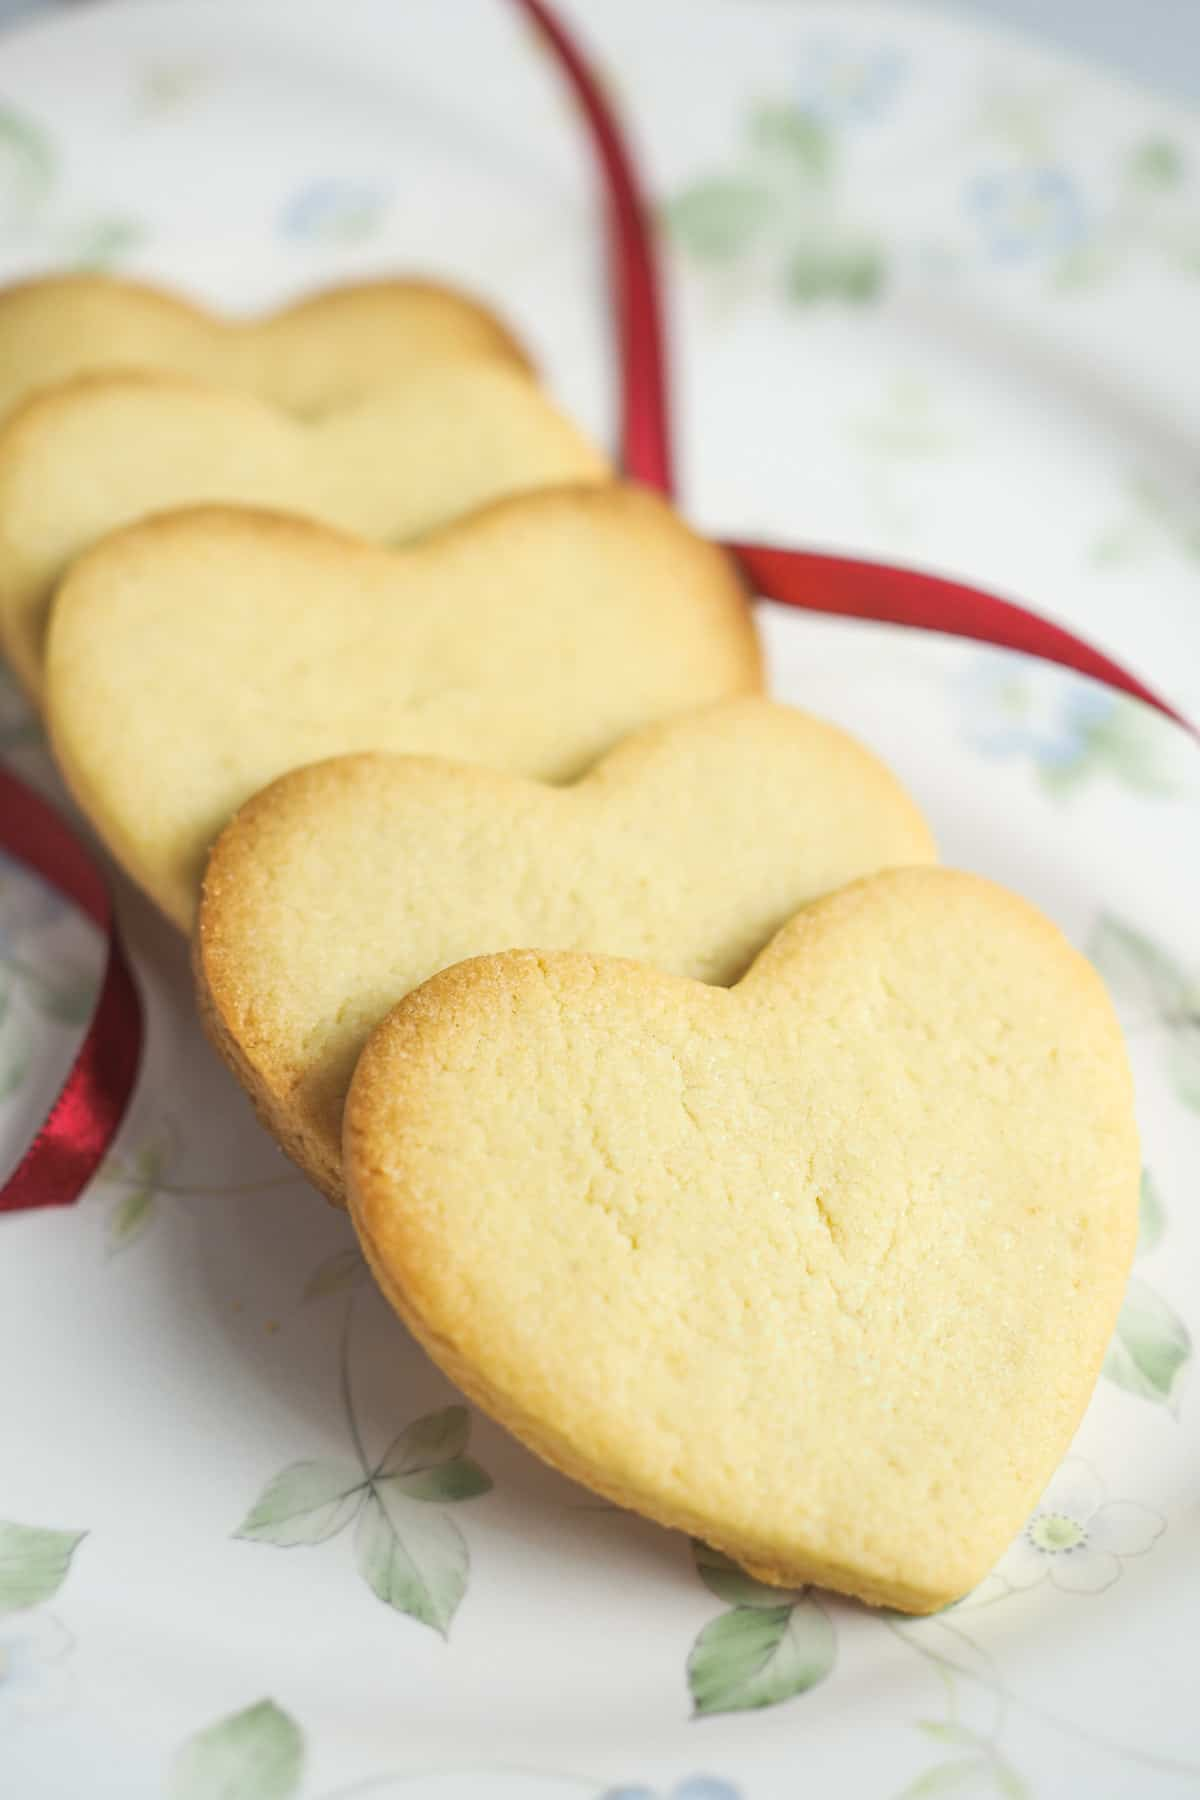 A row of overlapping heart shaped cookies on a floral plate